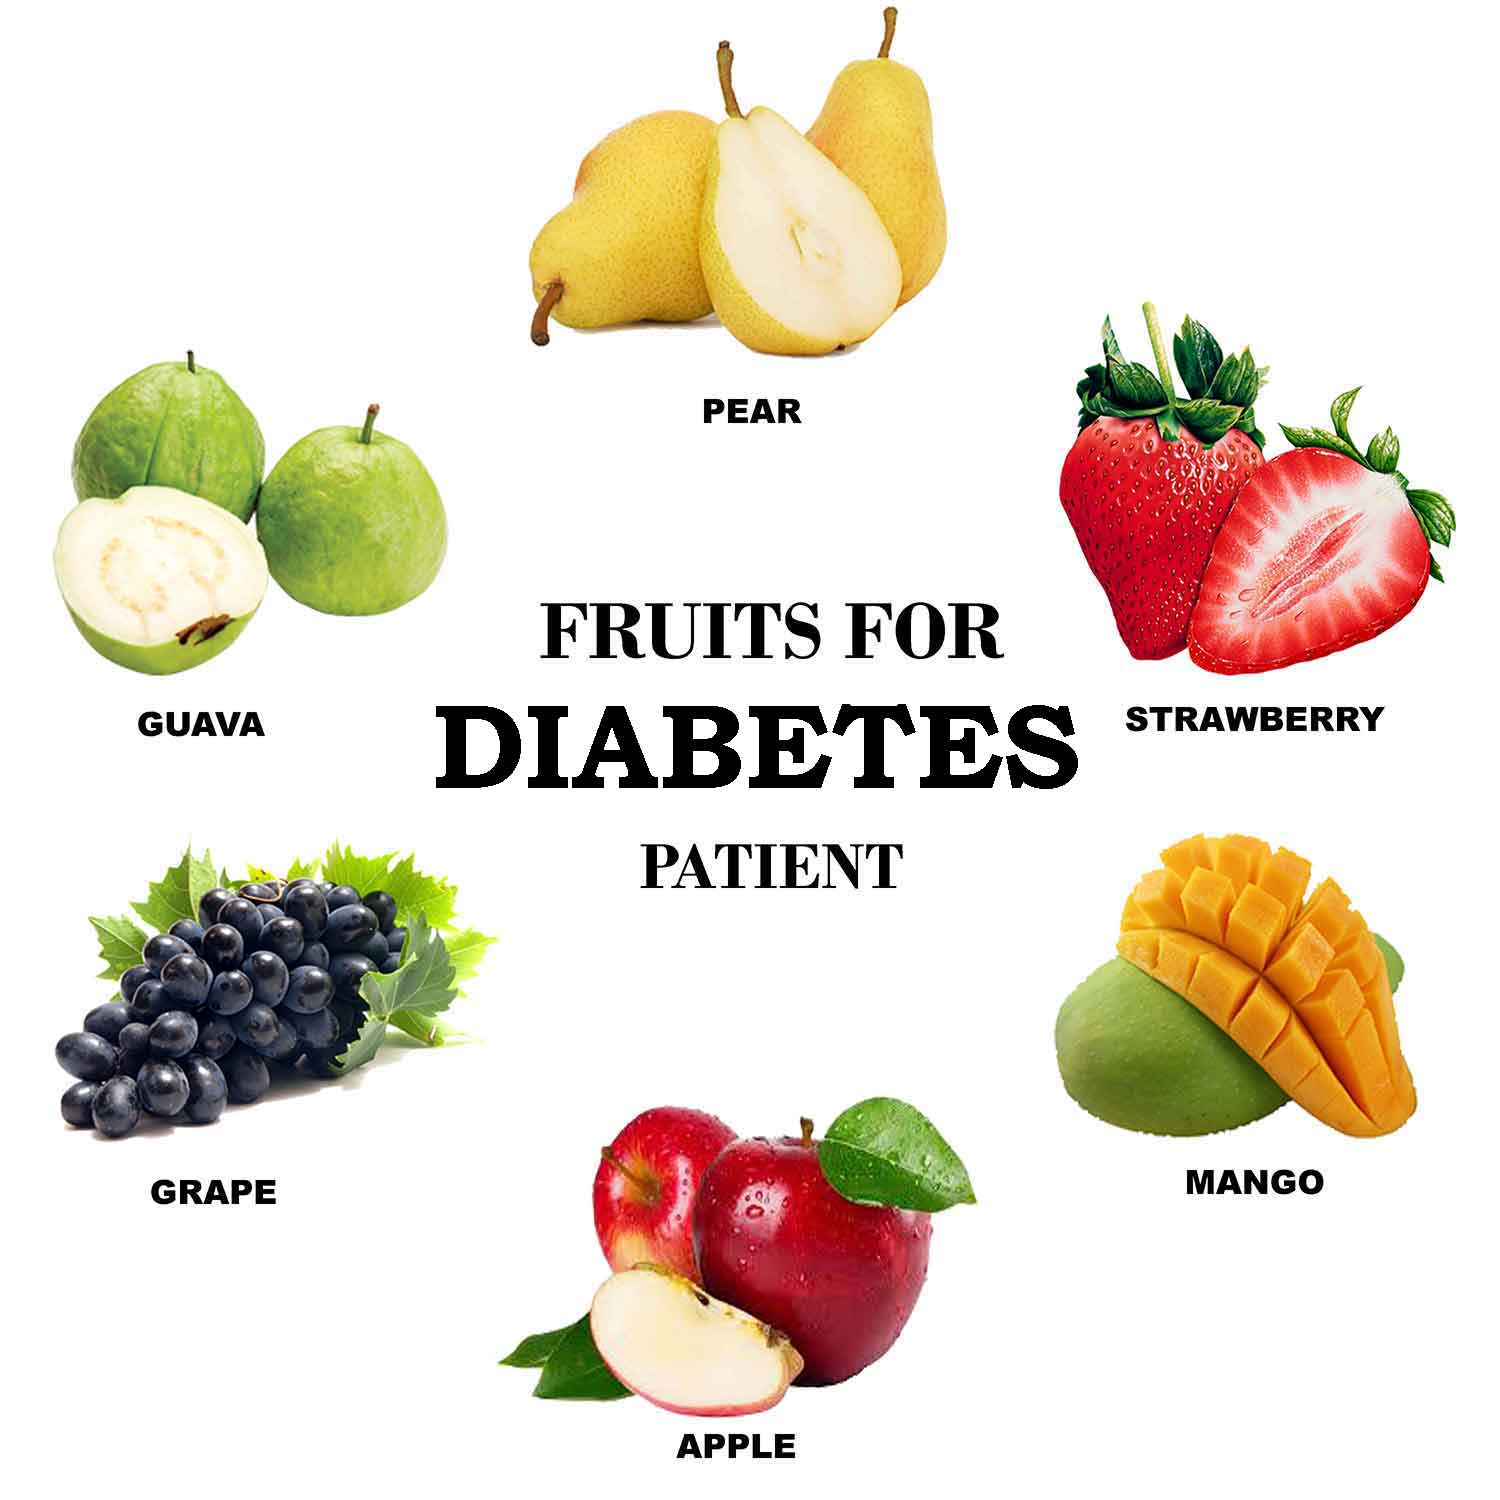 Fruits For Diabetics Why Should A Diabetic Eat Fruits Based On